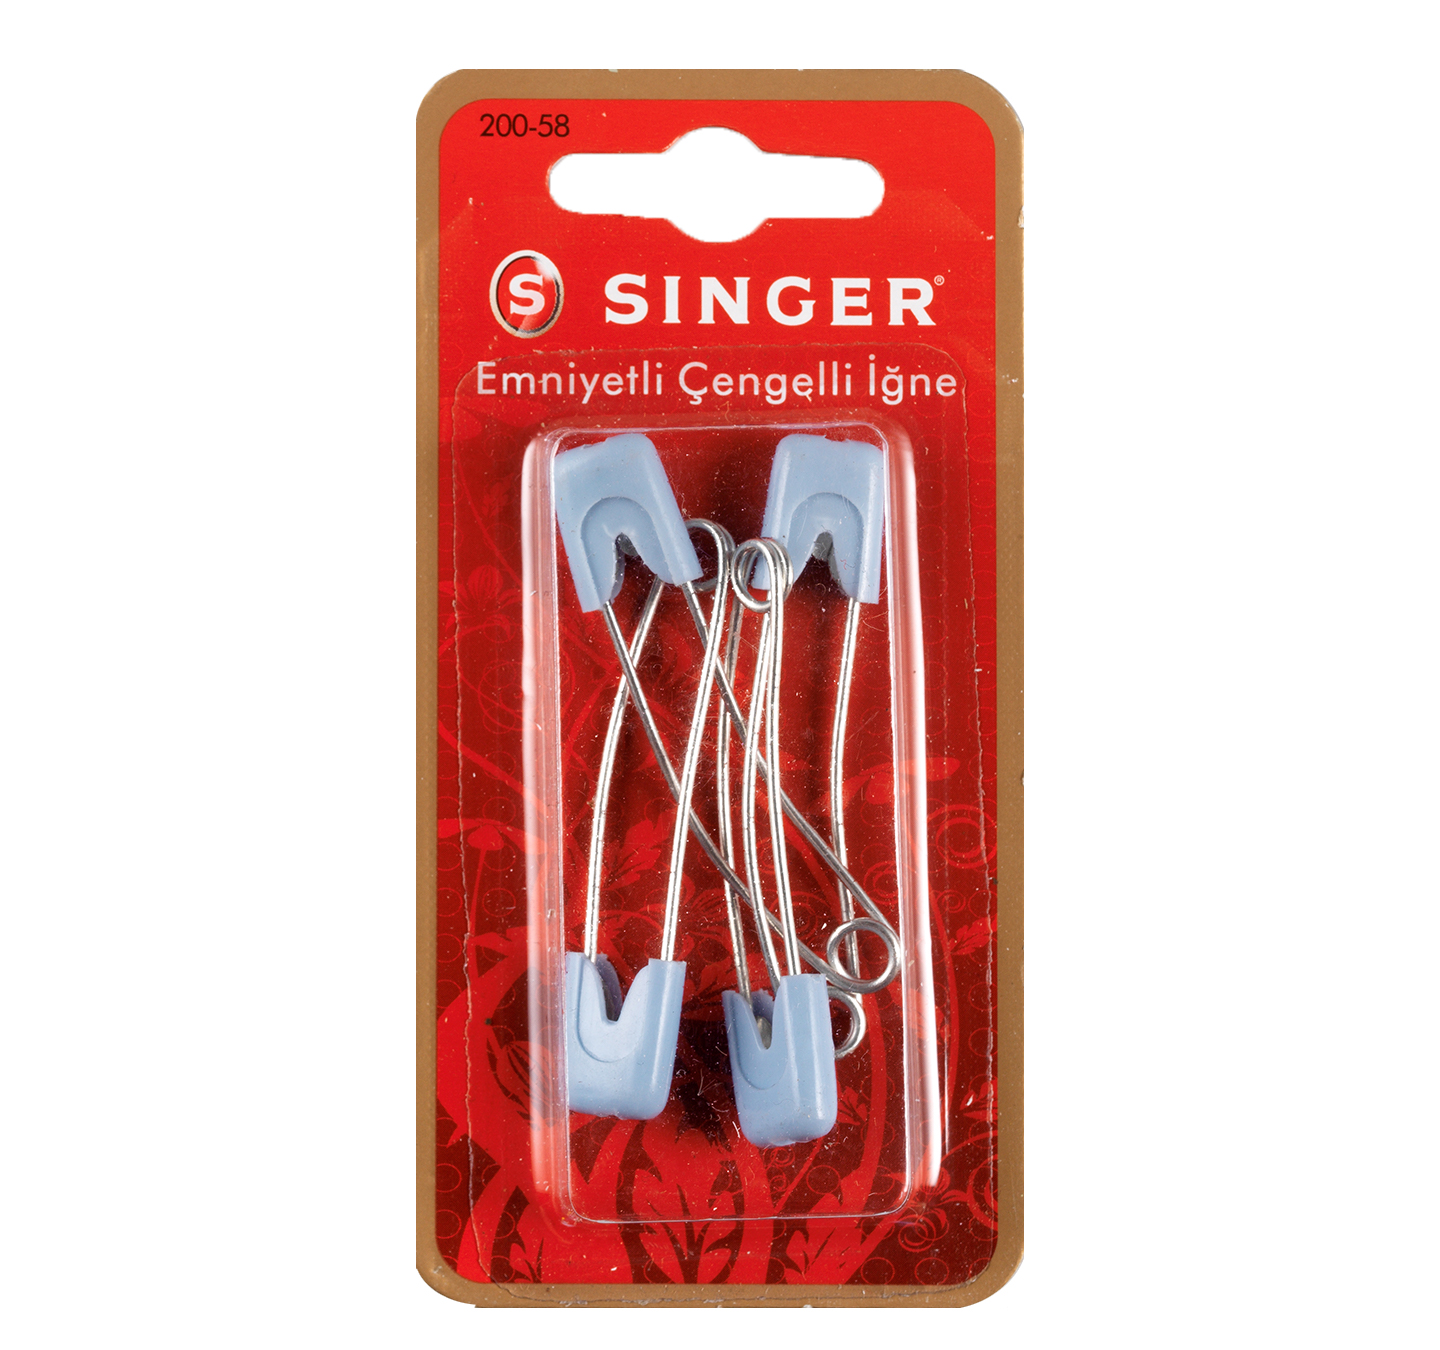 SINGER 200-58 HEAD LOCK SAFETY PINS